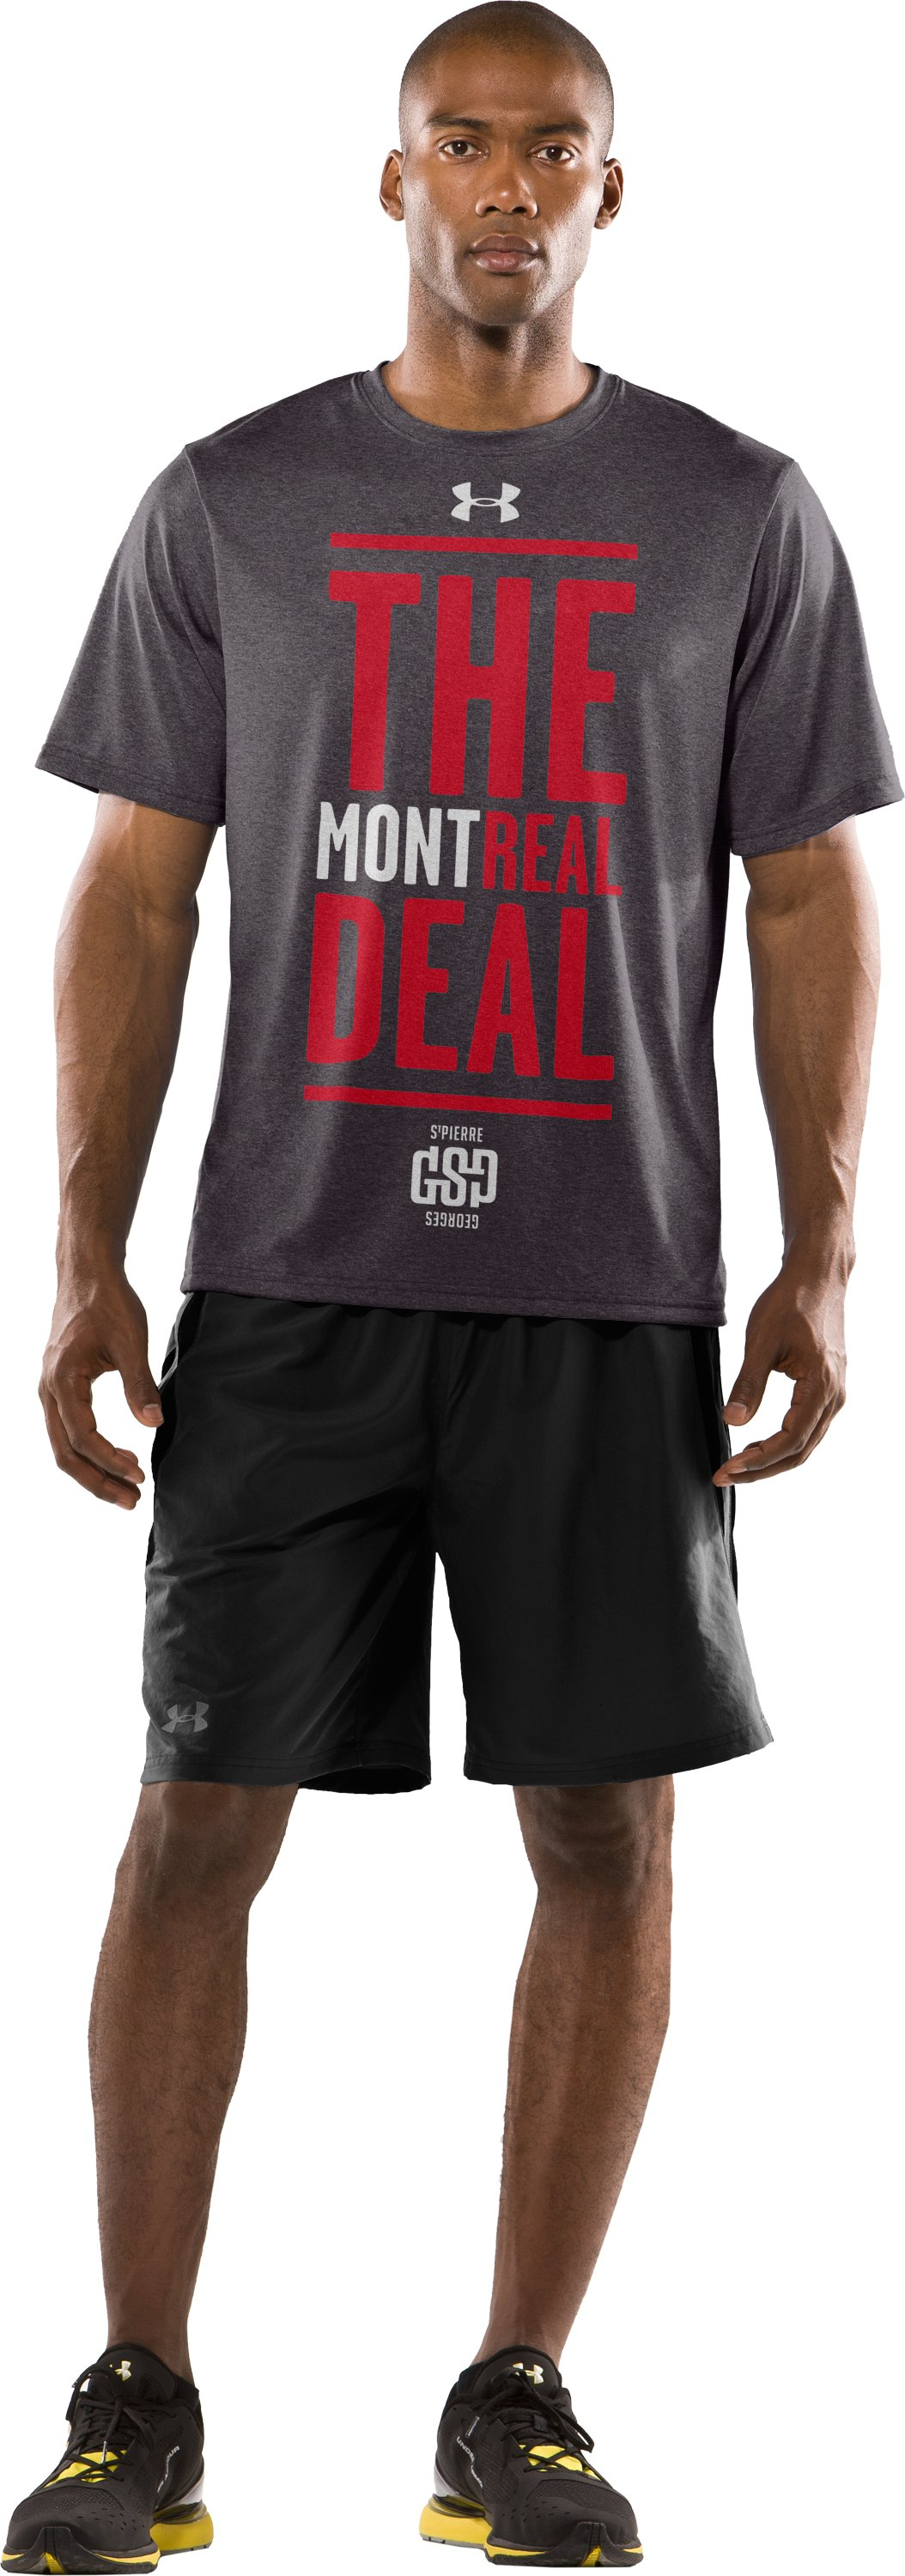 Men's GSP MontREAL T-Shirt, Carbon Heather